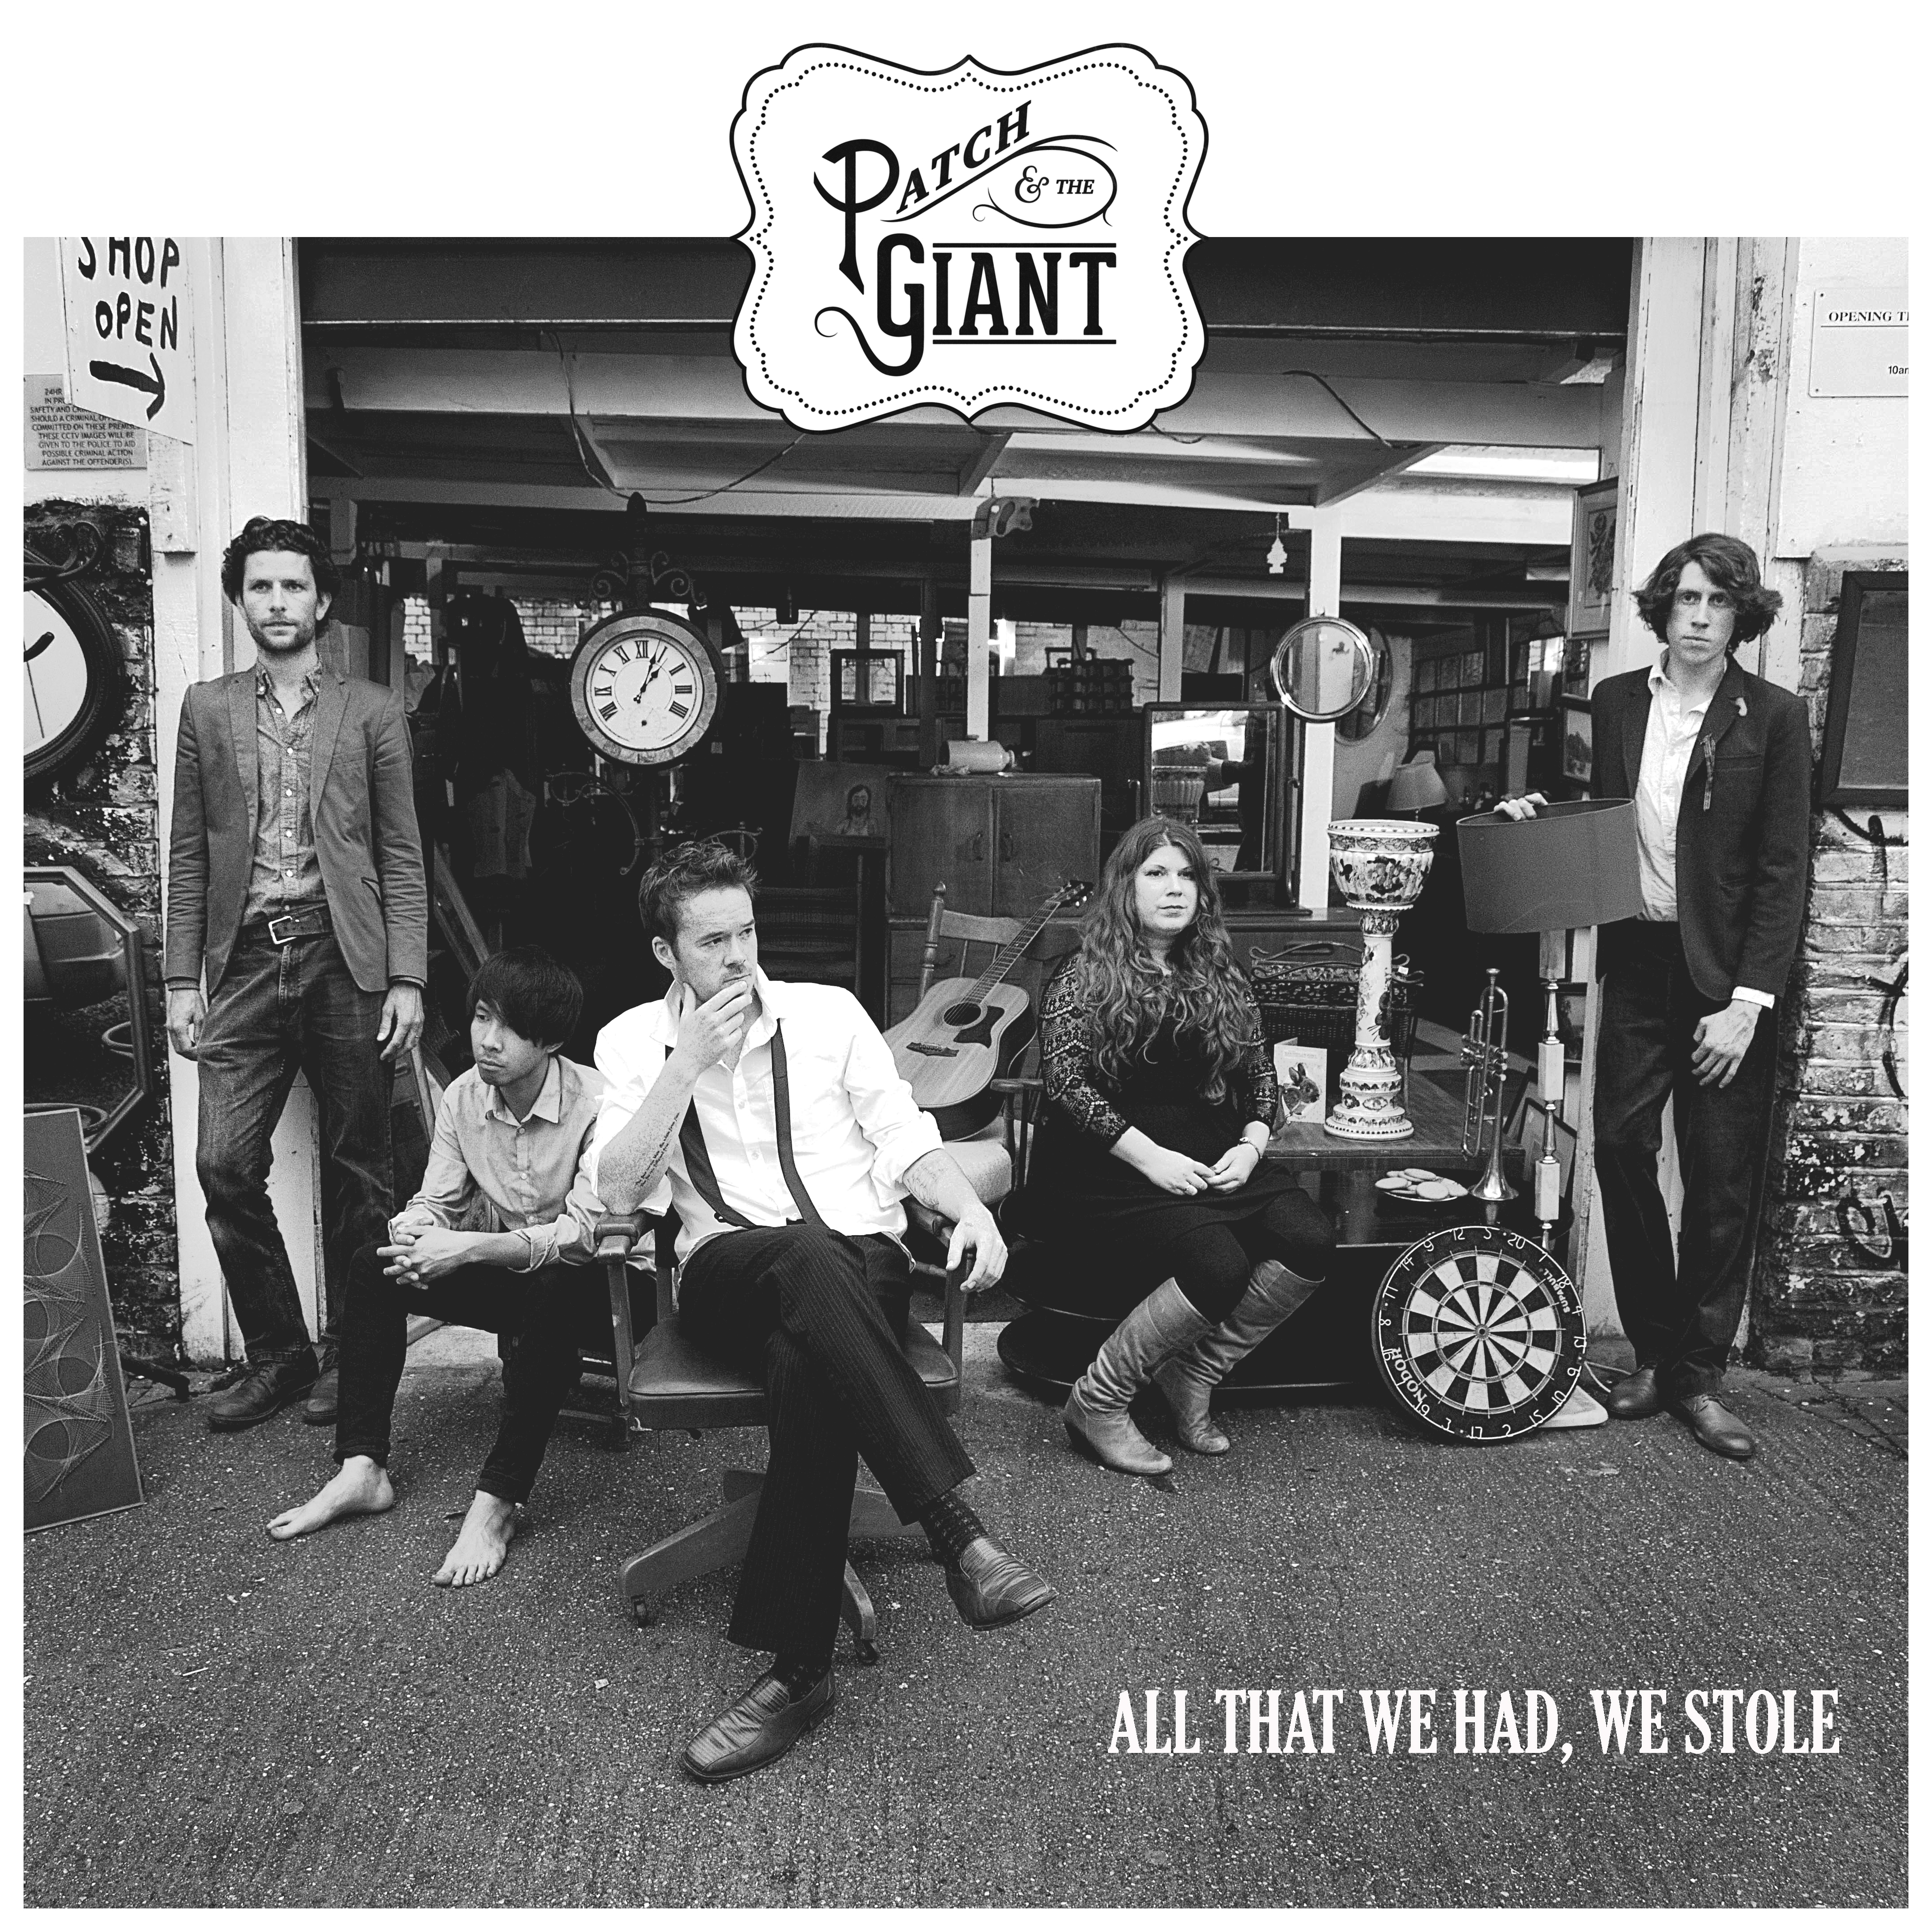 All That We Had, We Stole (CD) - Patch and the Giant